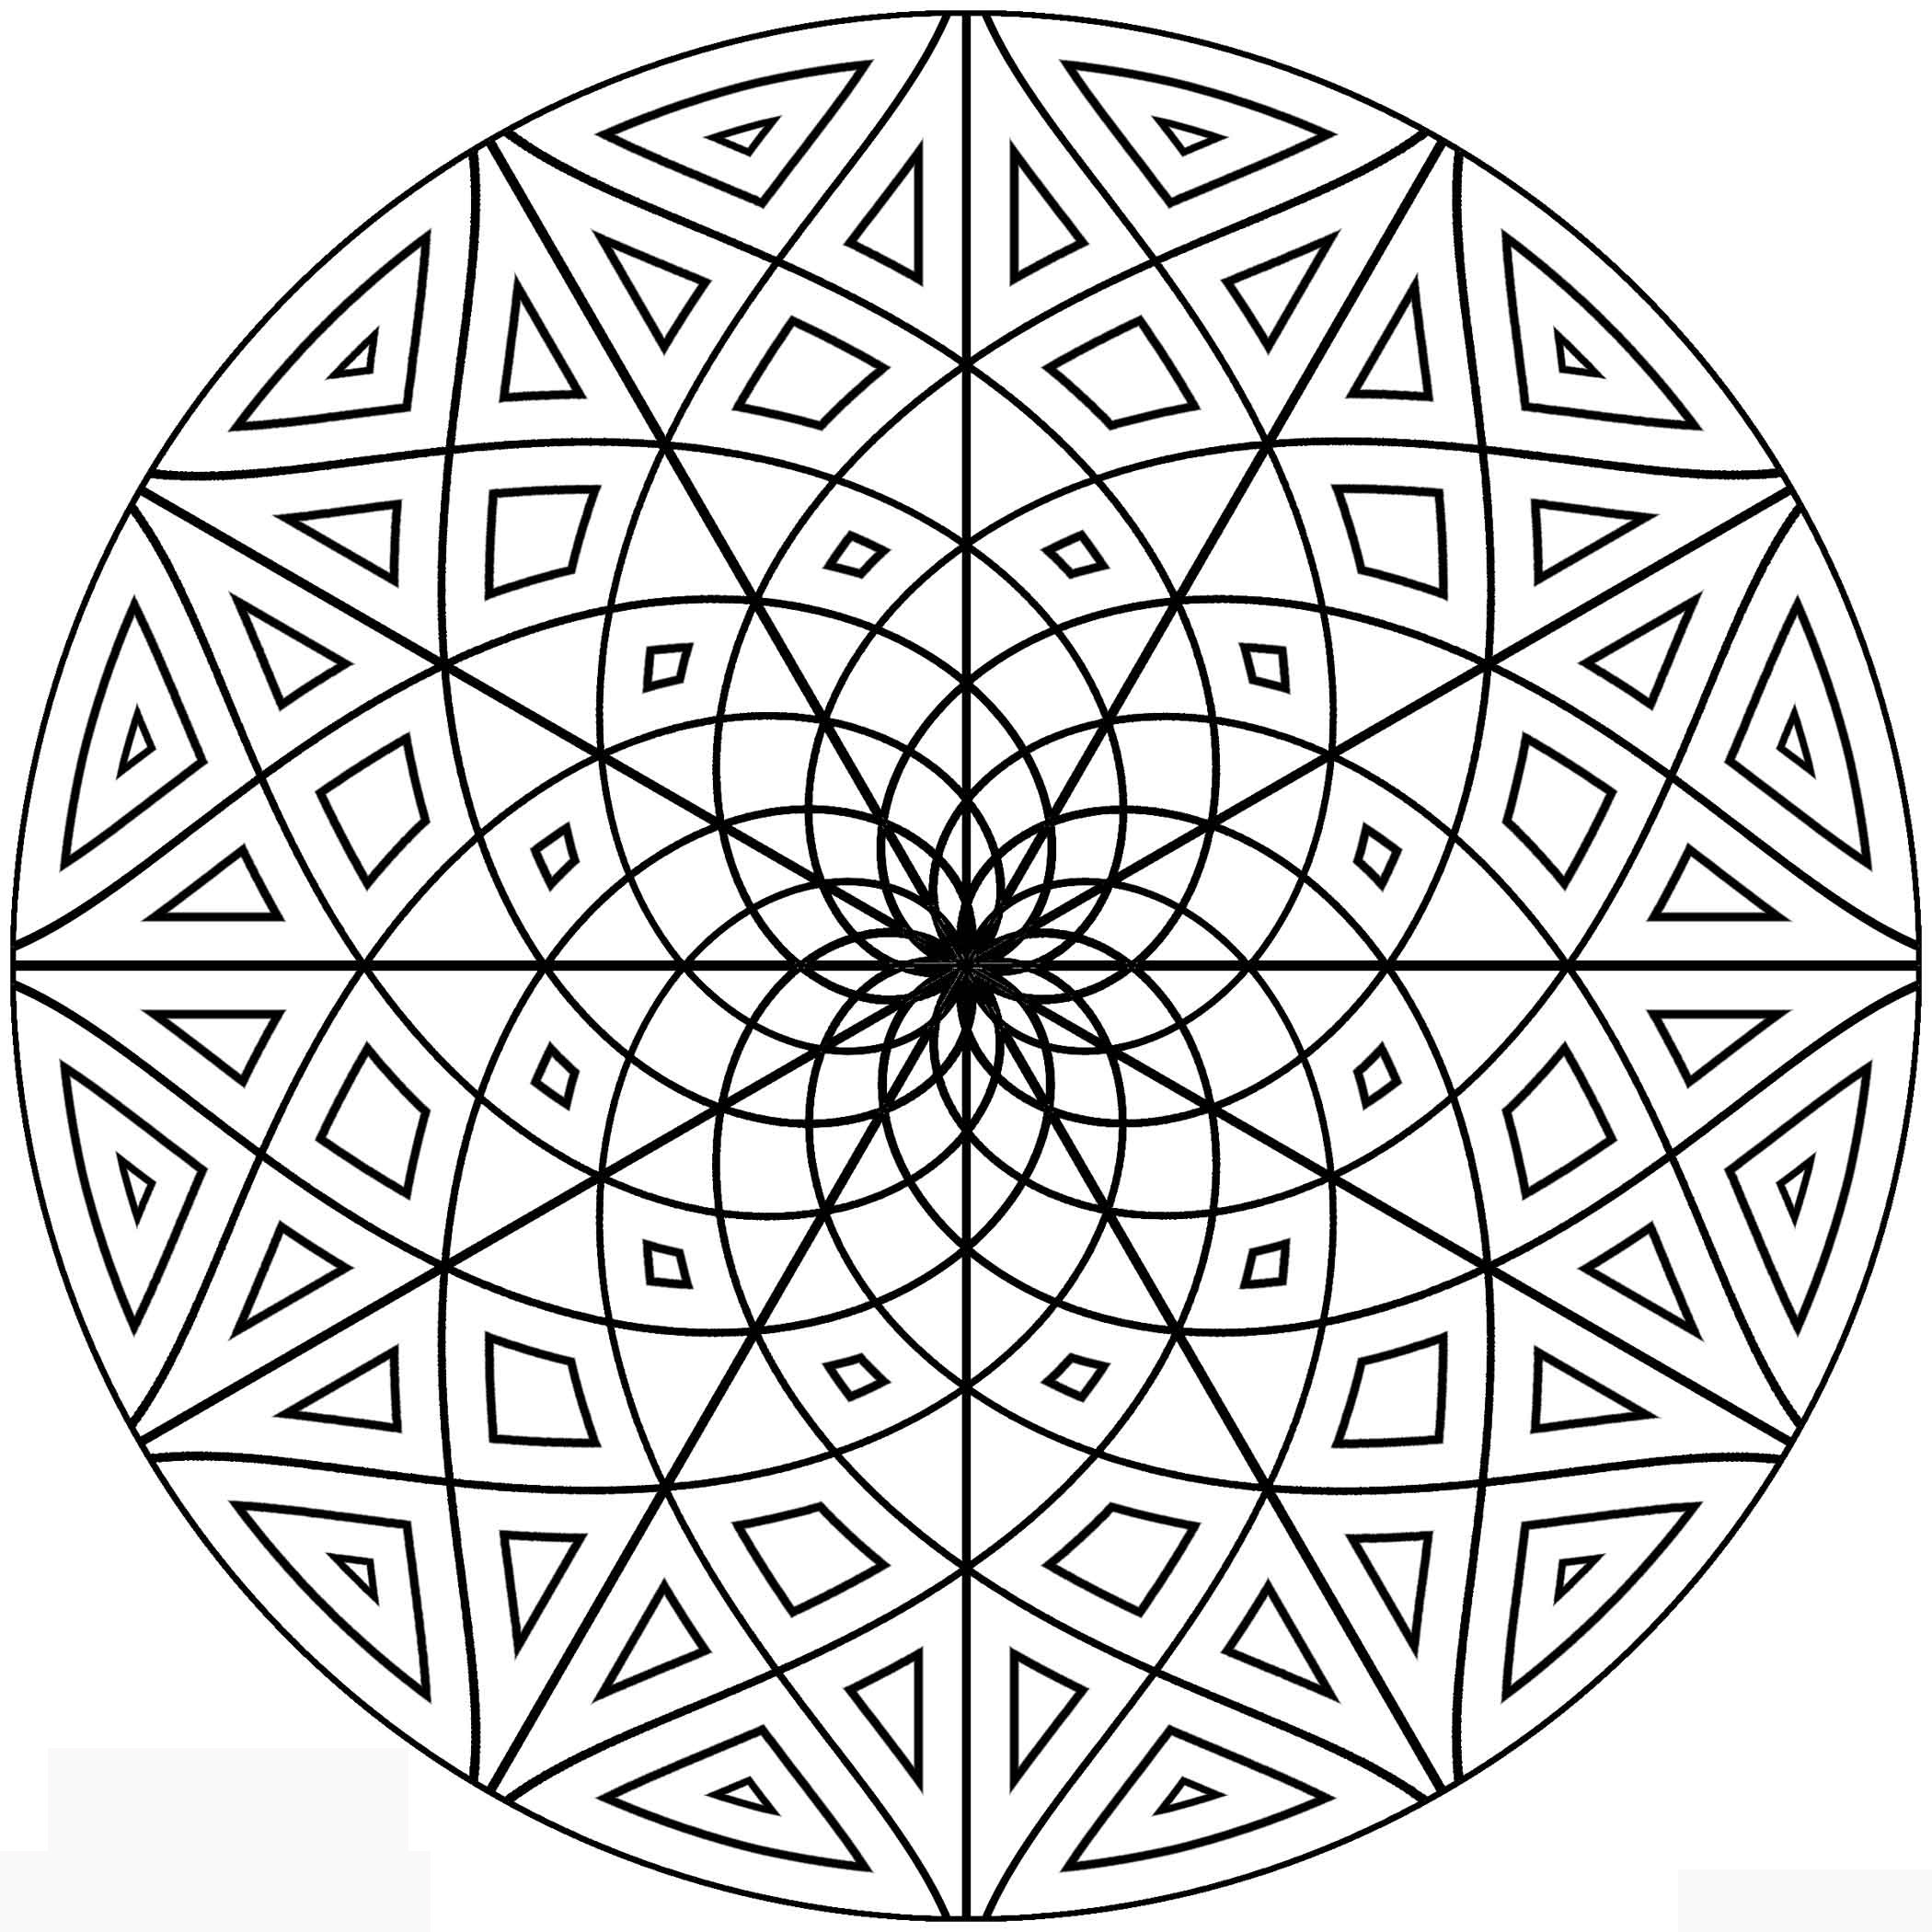 cool designs to color cool printable coloring pages for adults at getdrawings to cool designs color